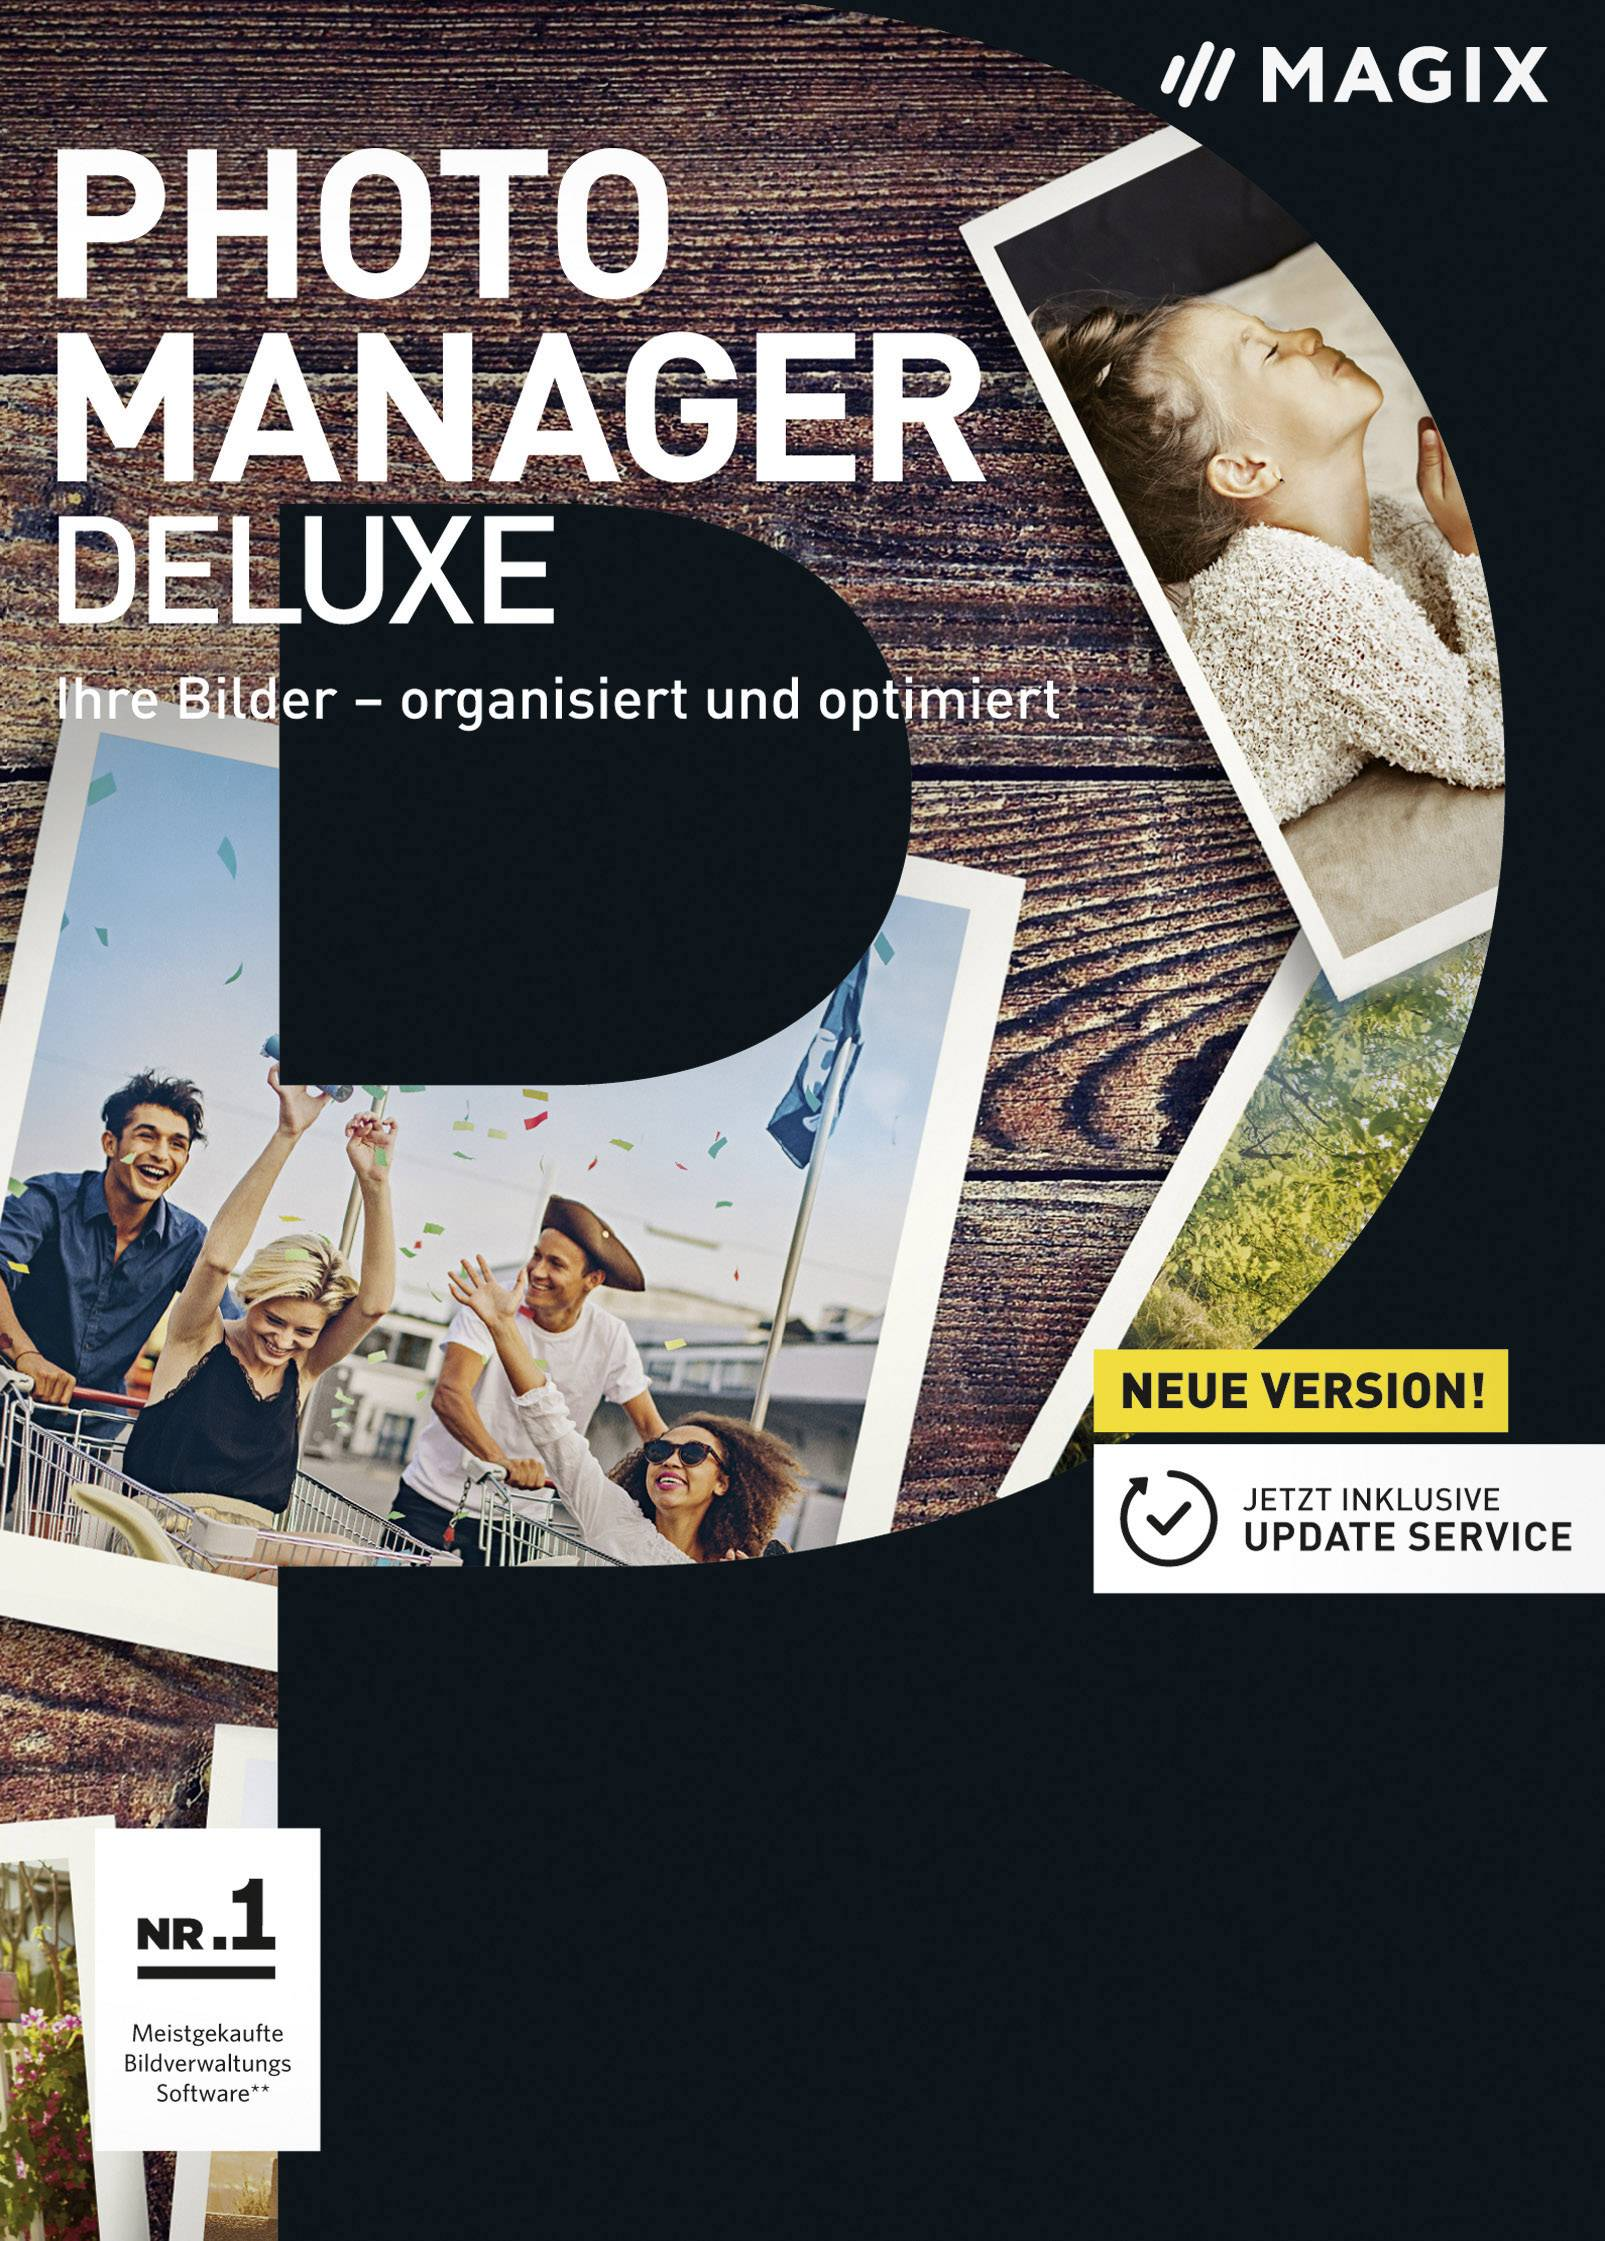 Magix Photo Manager Deluxe Full version, 1 license Windows